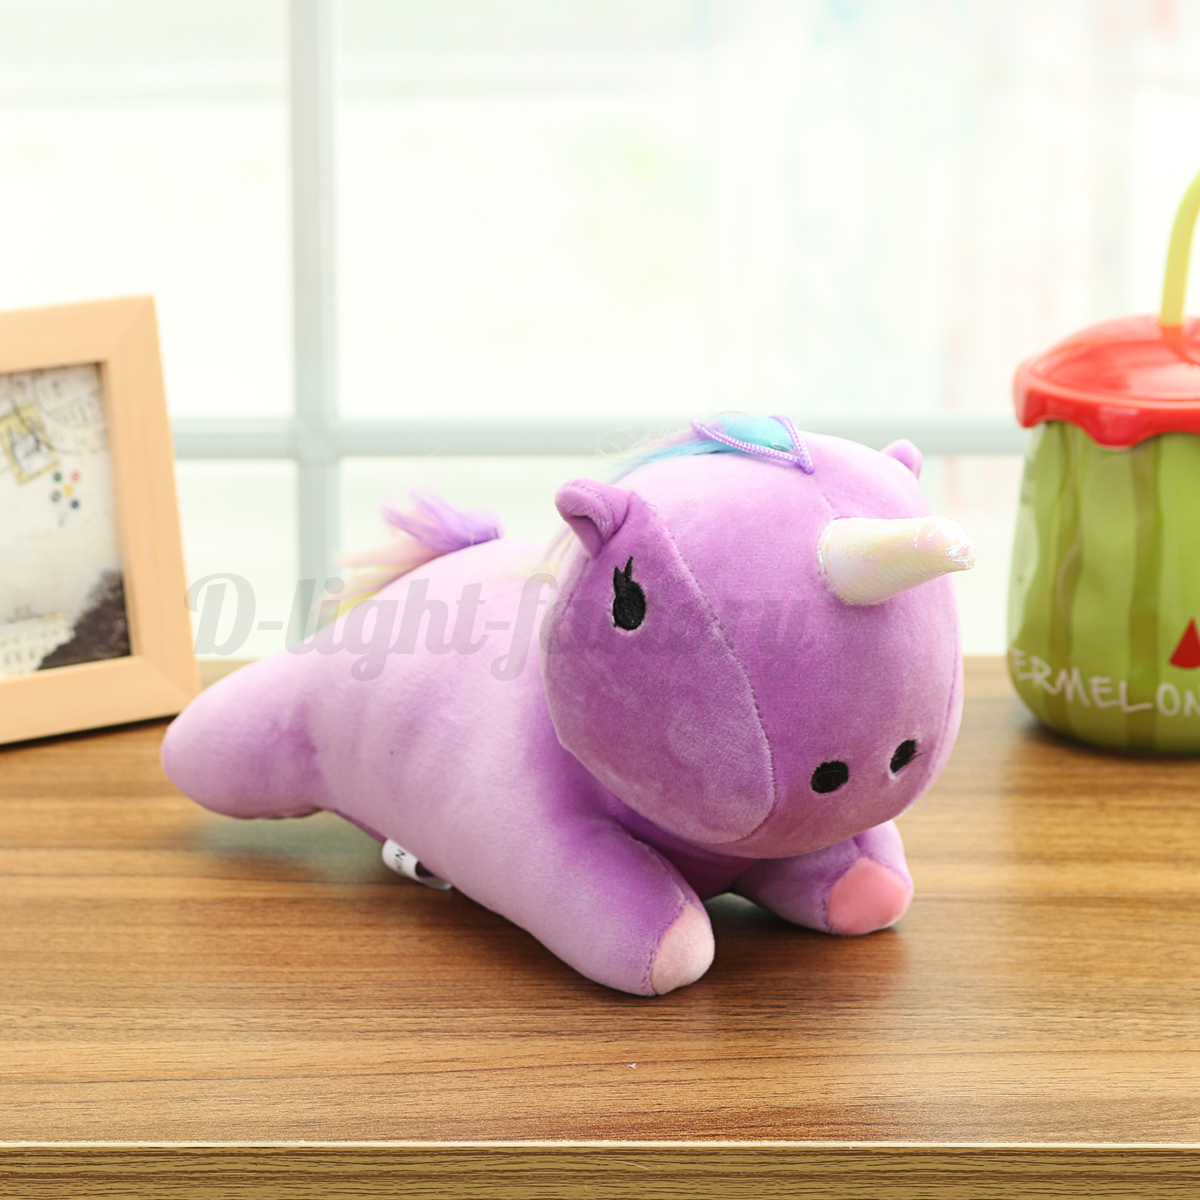 Animal Toy Pillow : Unicorn Plush Doll Animal Cushion Pillow Toy Home Office Sofa Bed Car Decor Gift eBay